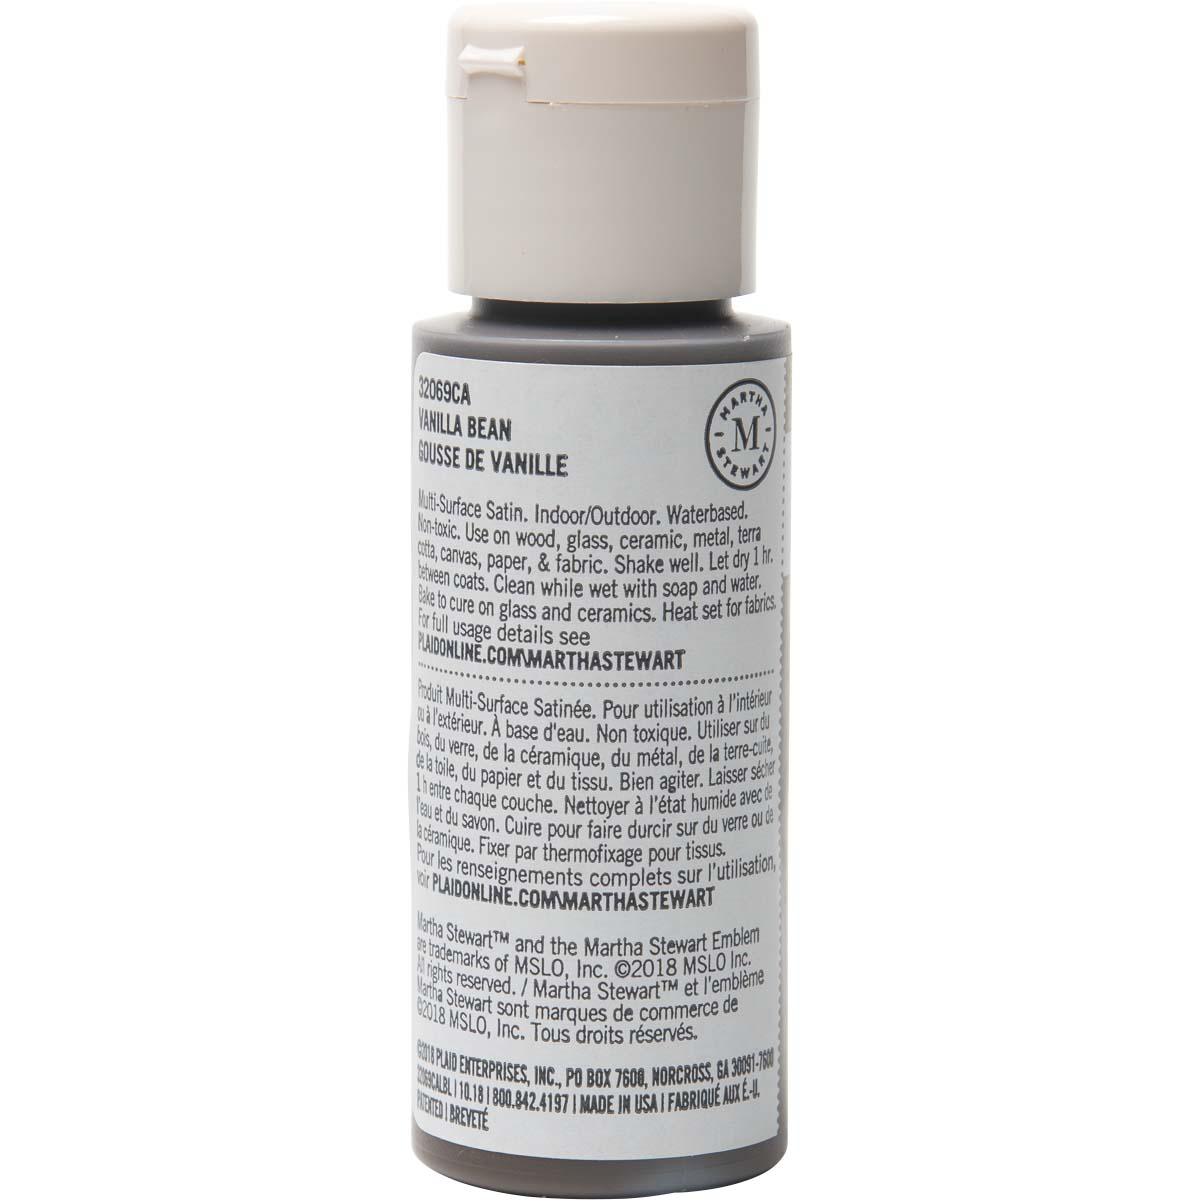 Martha Stewart ® Multi-Surface Satin Acrylic Craft Paint - Vanillla Bean, 2 oz. - 32069CA